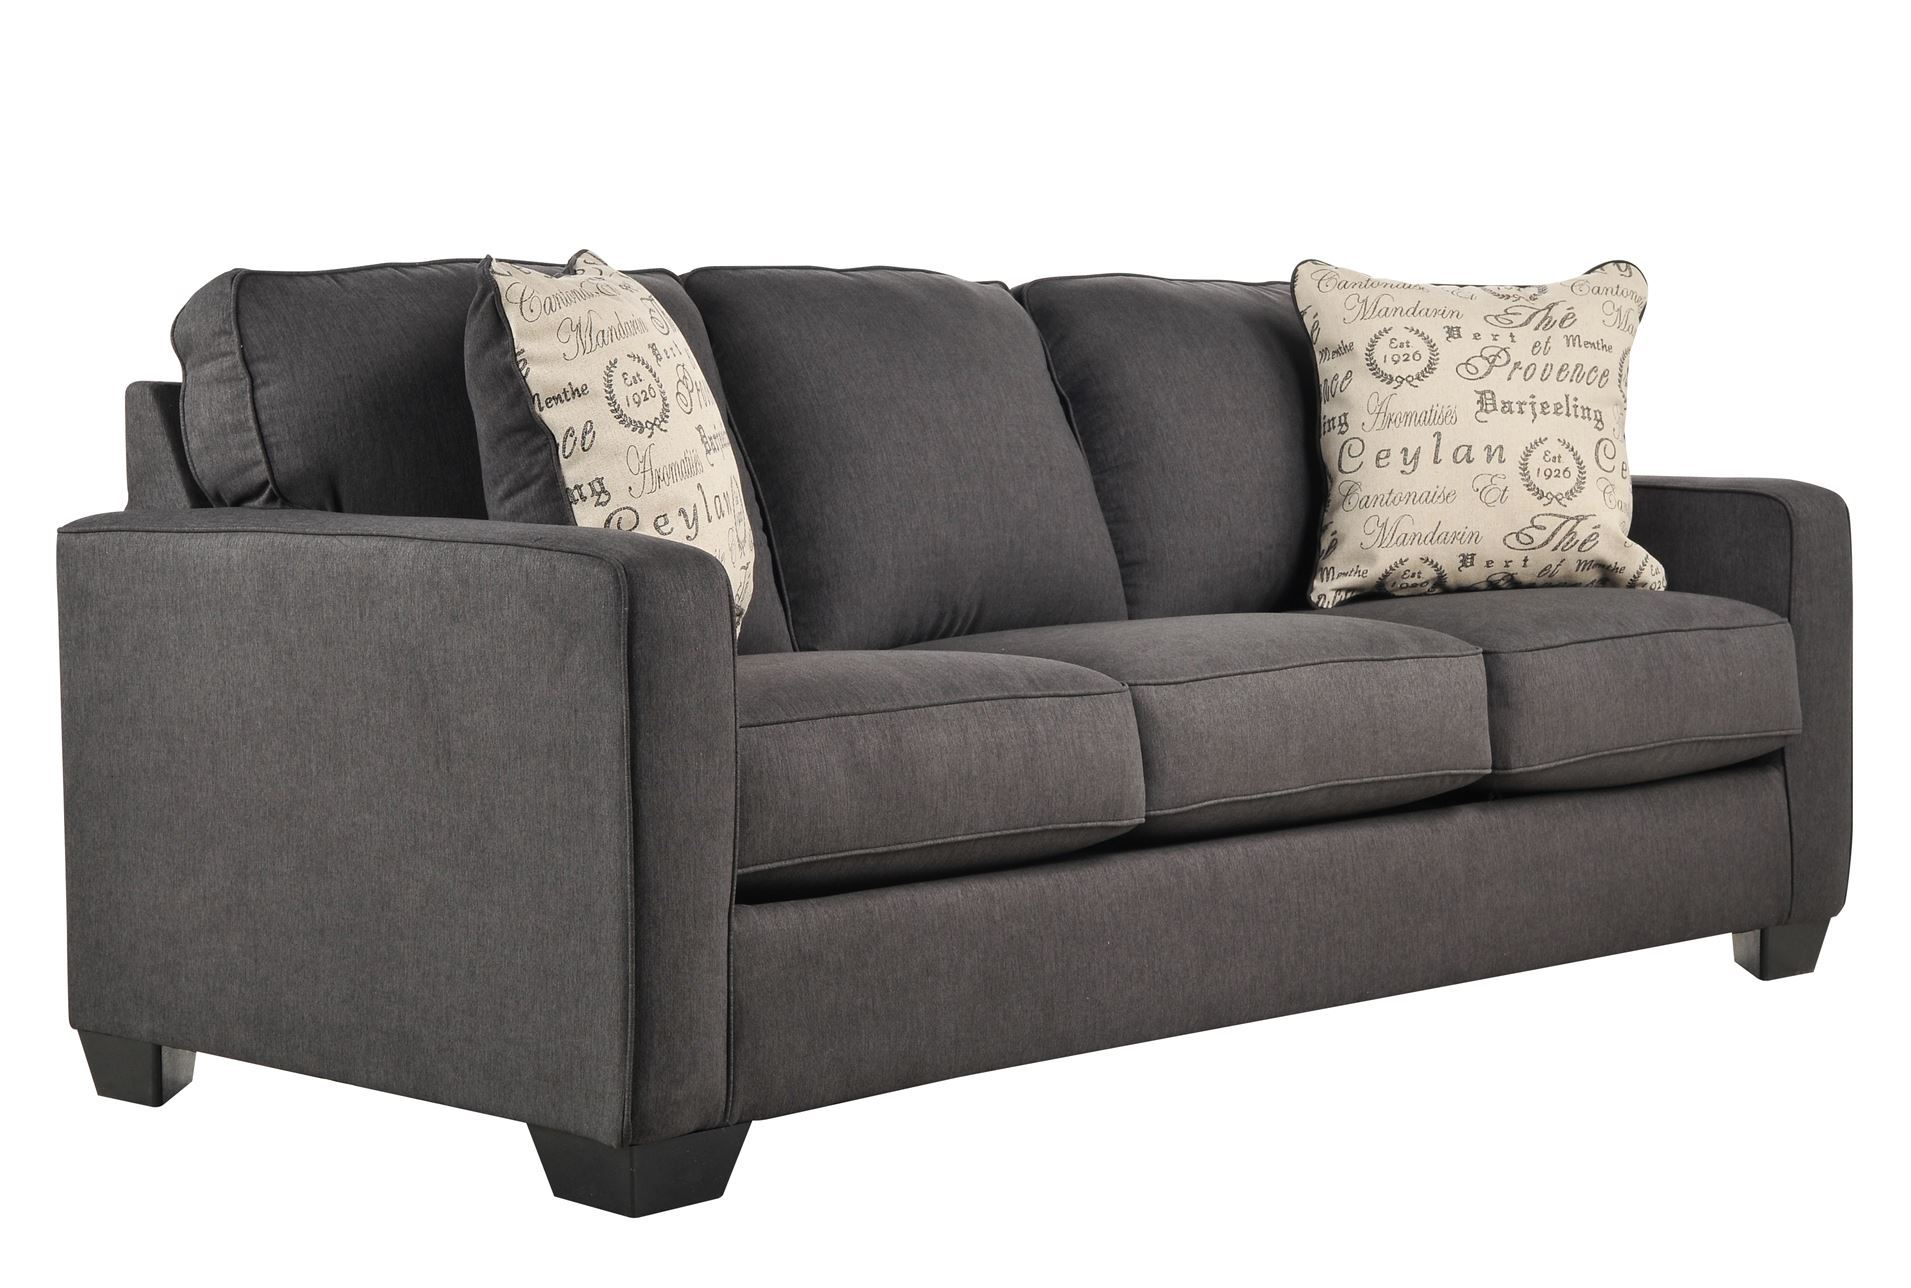 Alenya charcoal sofa living spaces for Living spaces sofas